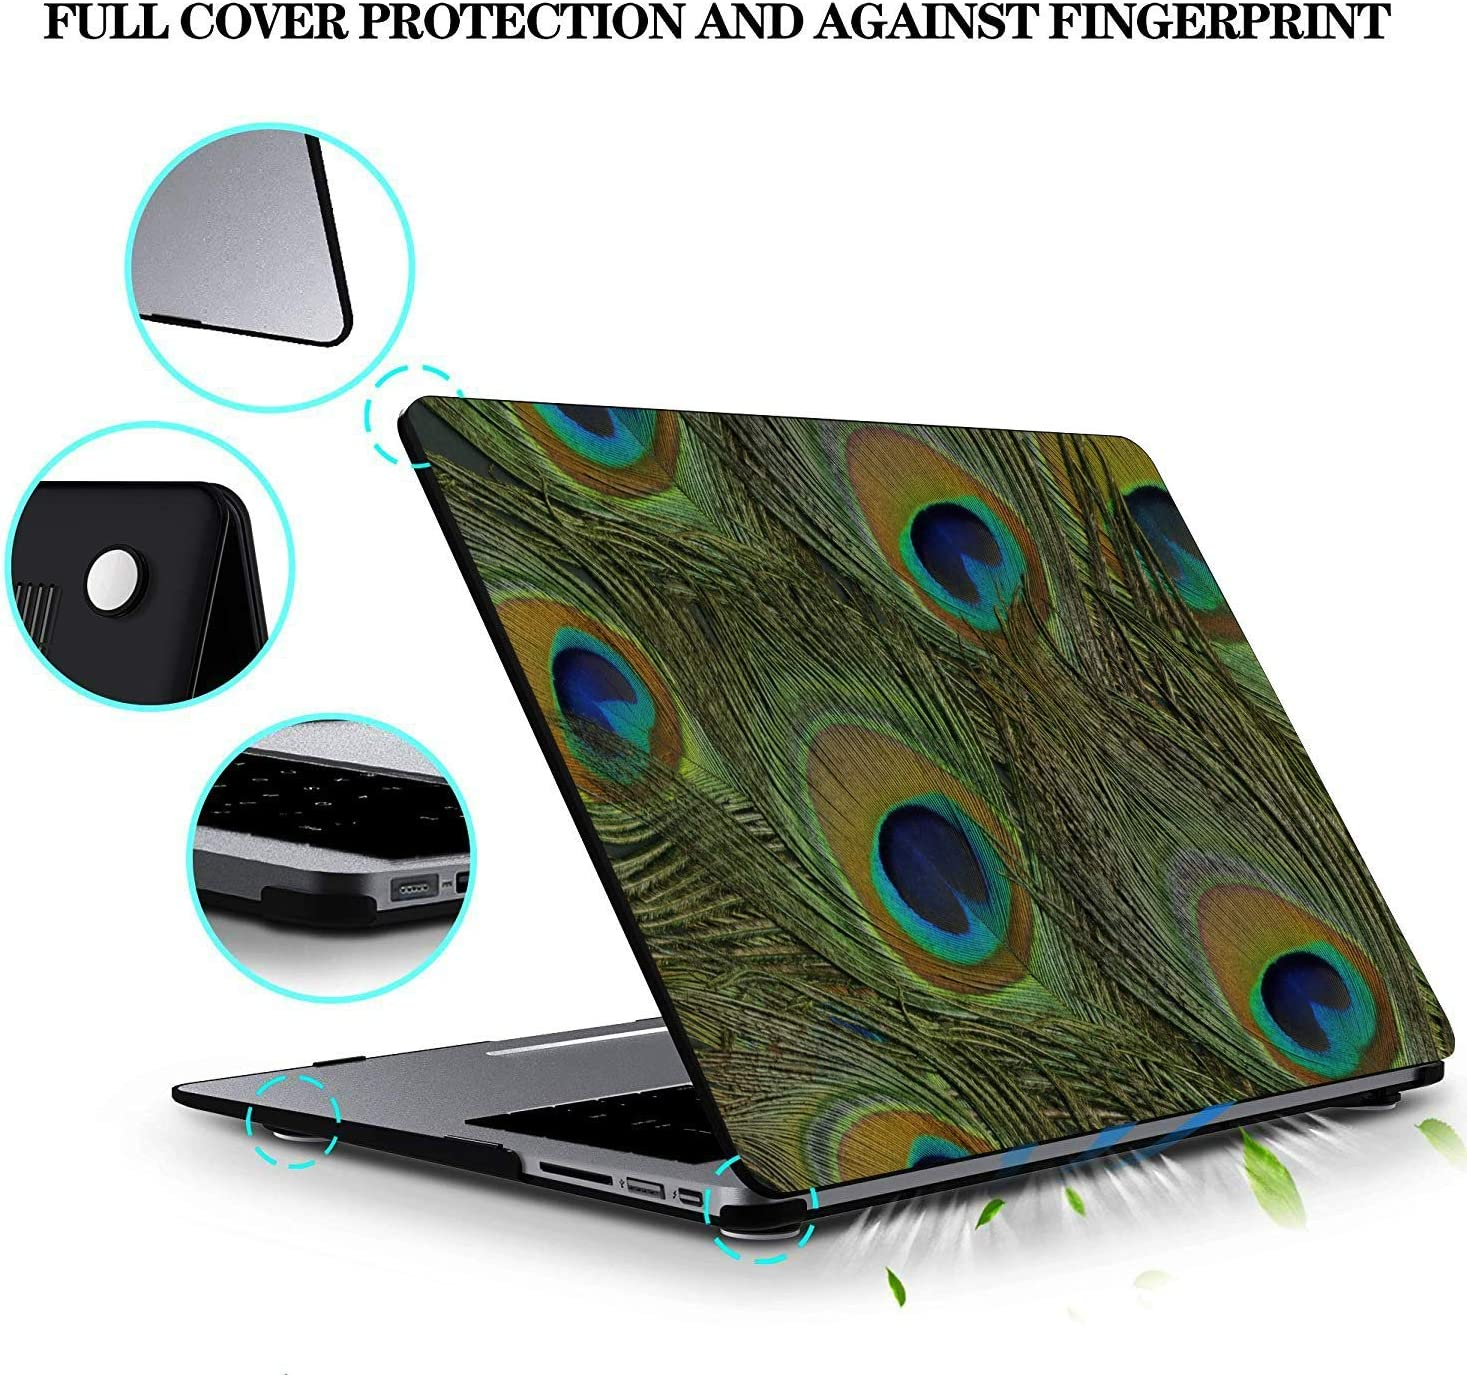 MacBook Pro Case 2015 Colorful Bird Peacock Feathers Plastic Hard Shell Compatible Mac Air 11 Pro 13 15 MacBook Assessories Protection for MacBook 2016-2019 Version